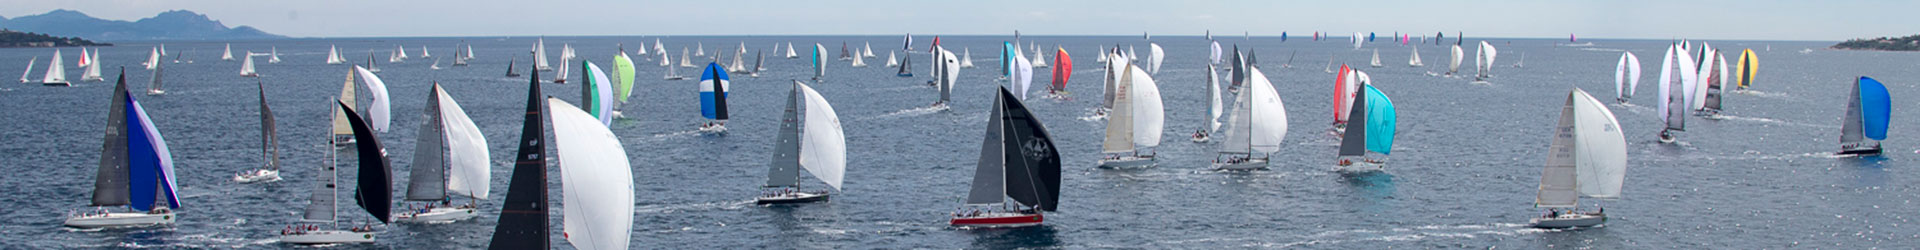 regatta official website | Rolex Giraglia 2018 results | Rolex Giraglia 2018 dates